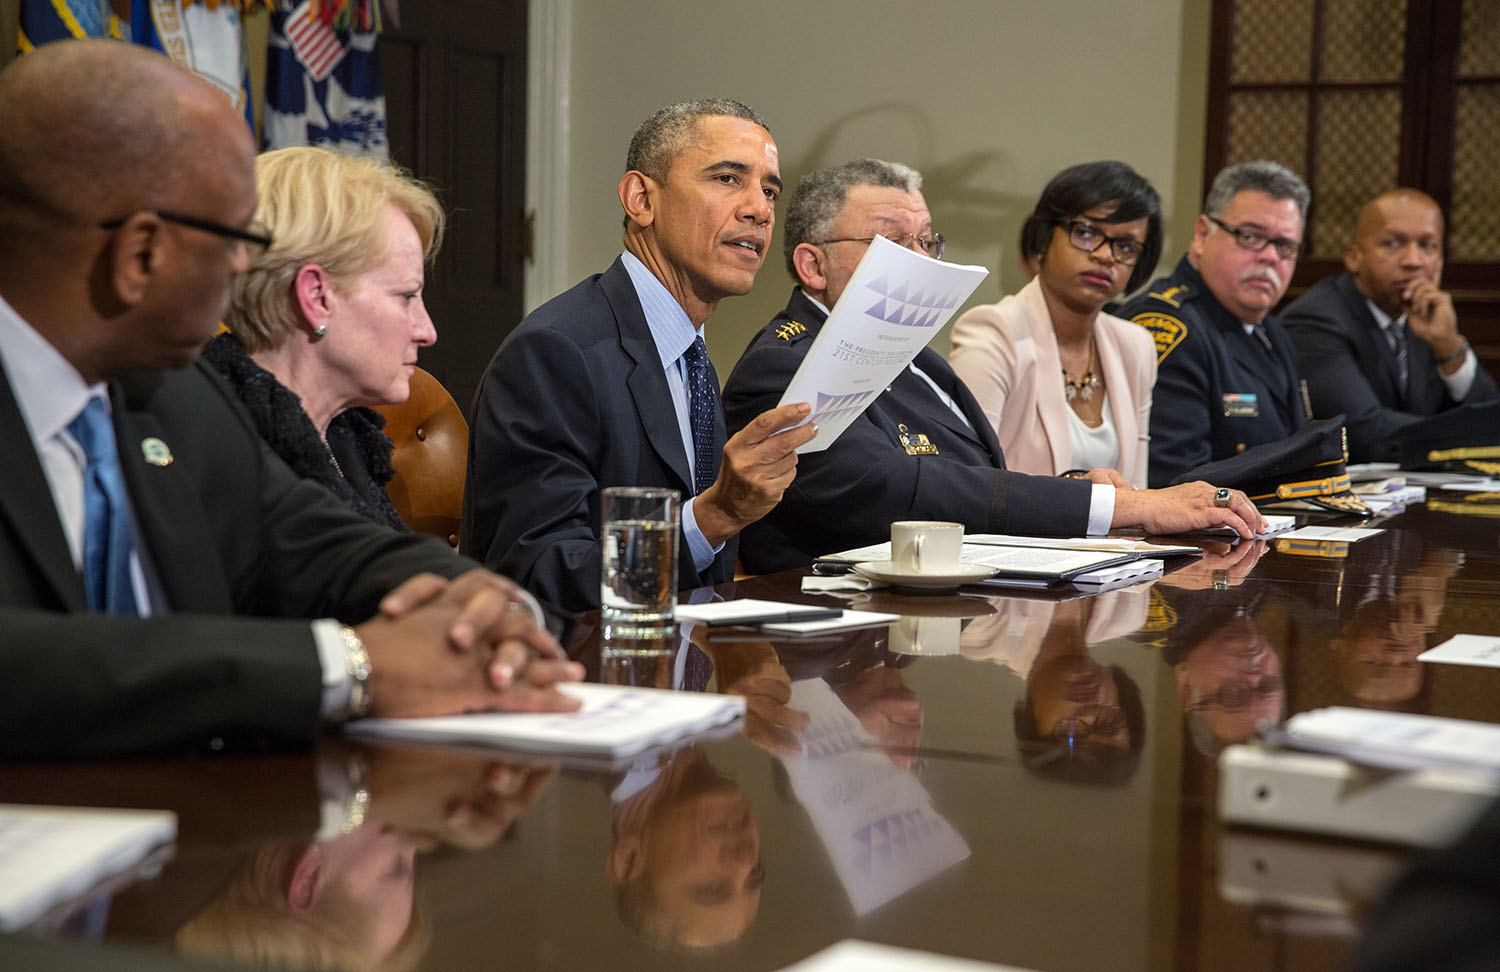 President Obama discusses the Task Force on 21st Century Policing